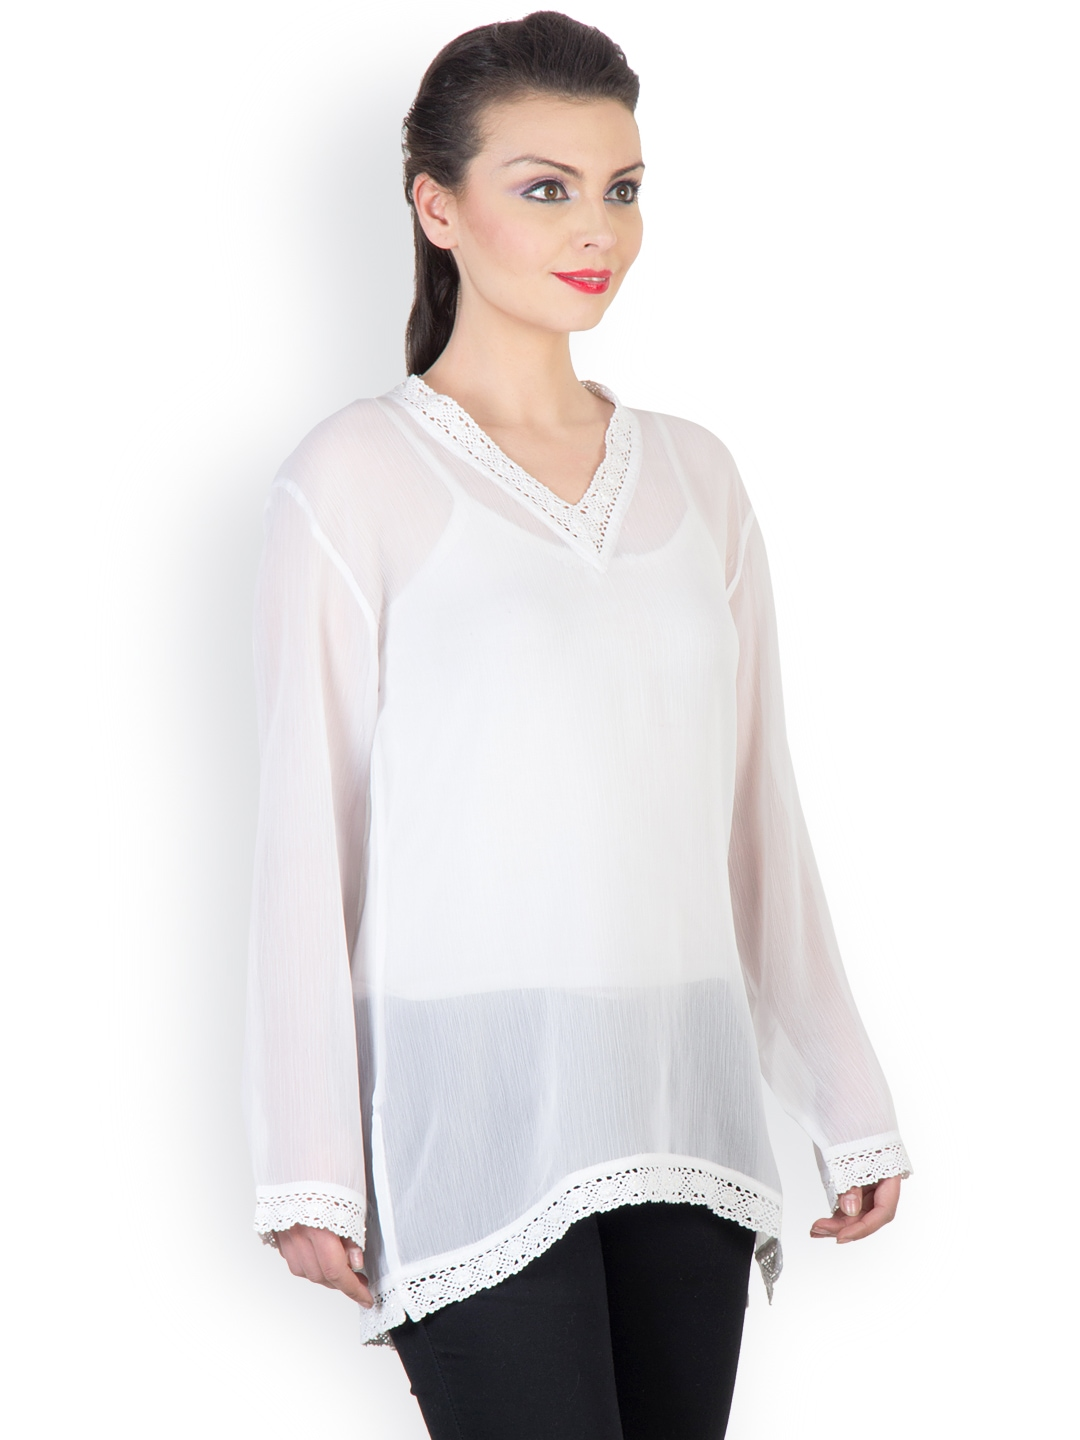 Find great deals on eBay for womens white tunic. Shop with confidence.